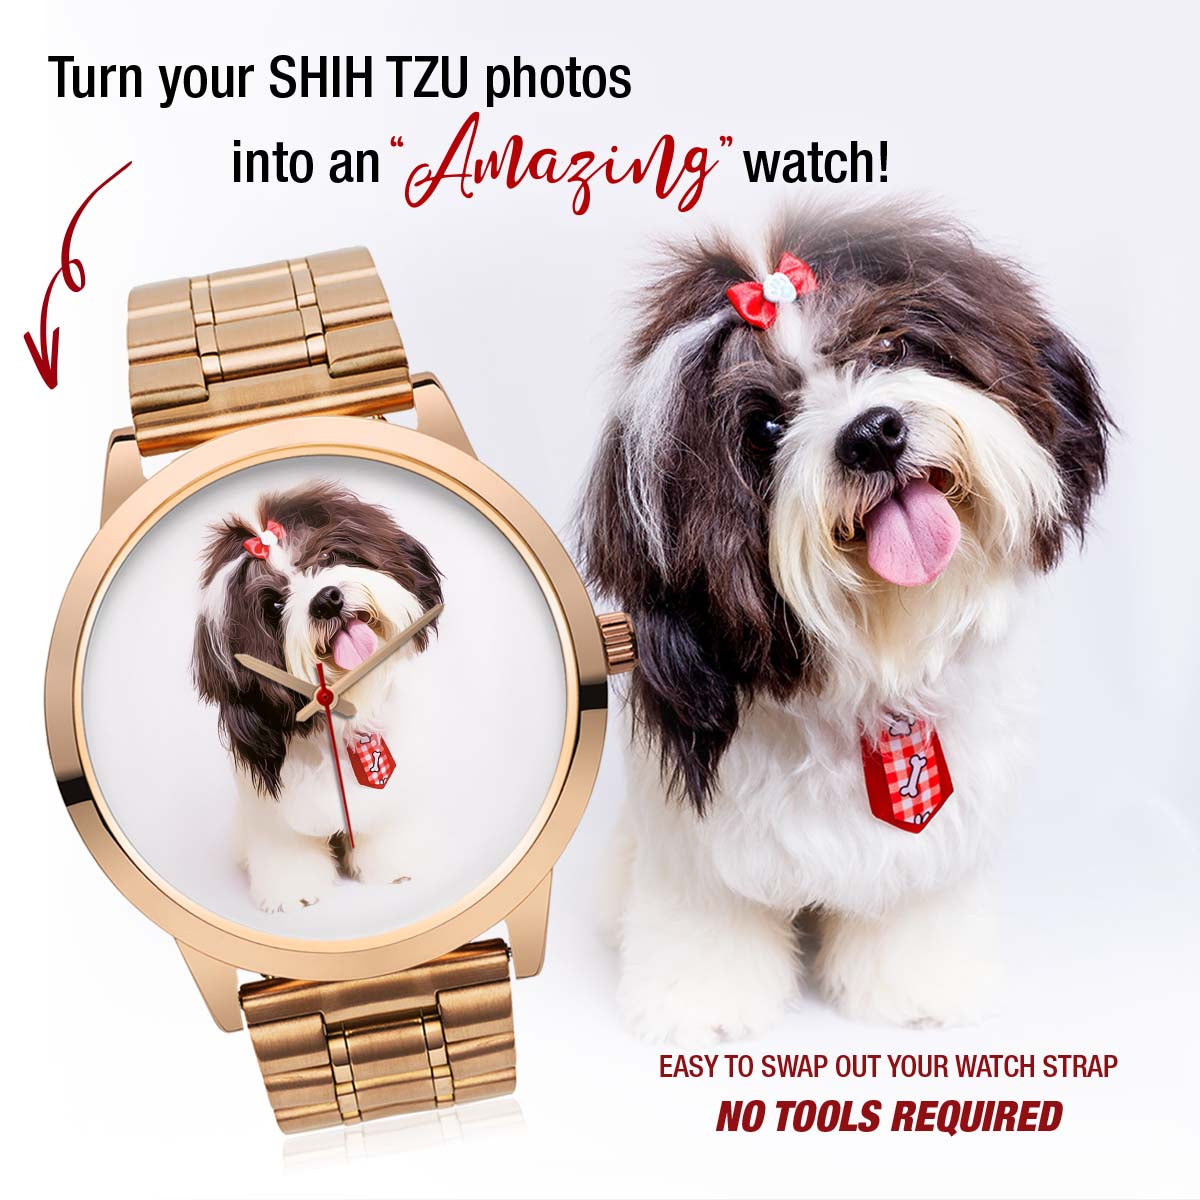 PERSONALIZED watch- upload your SHIN TZU photos